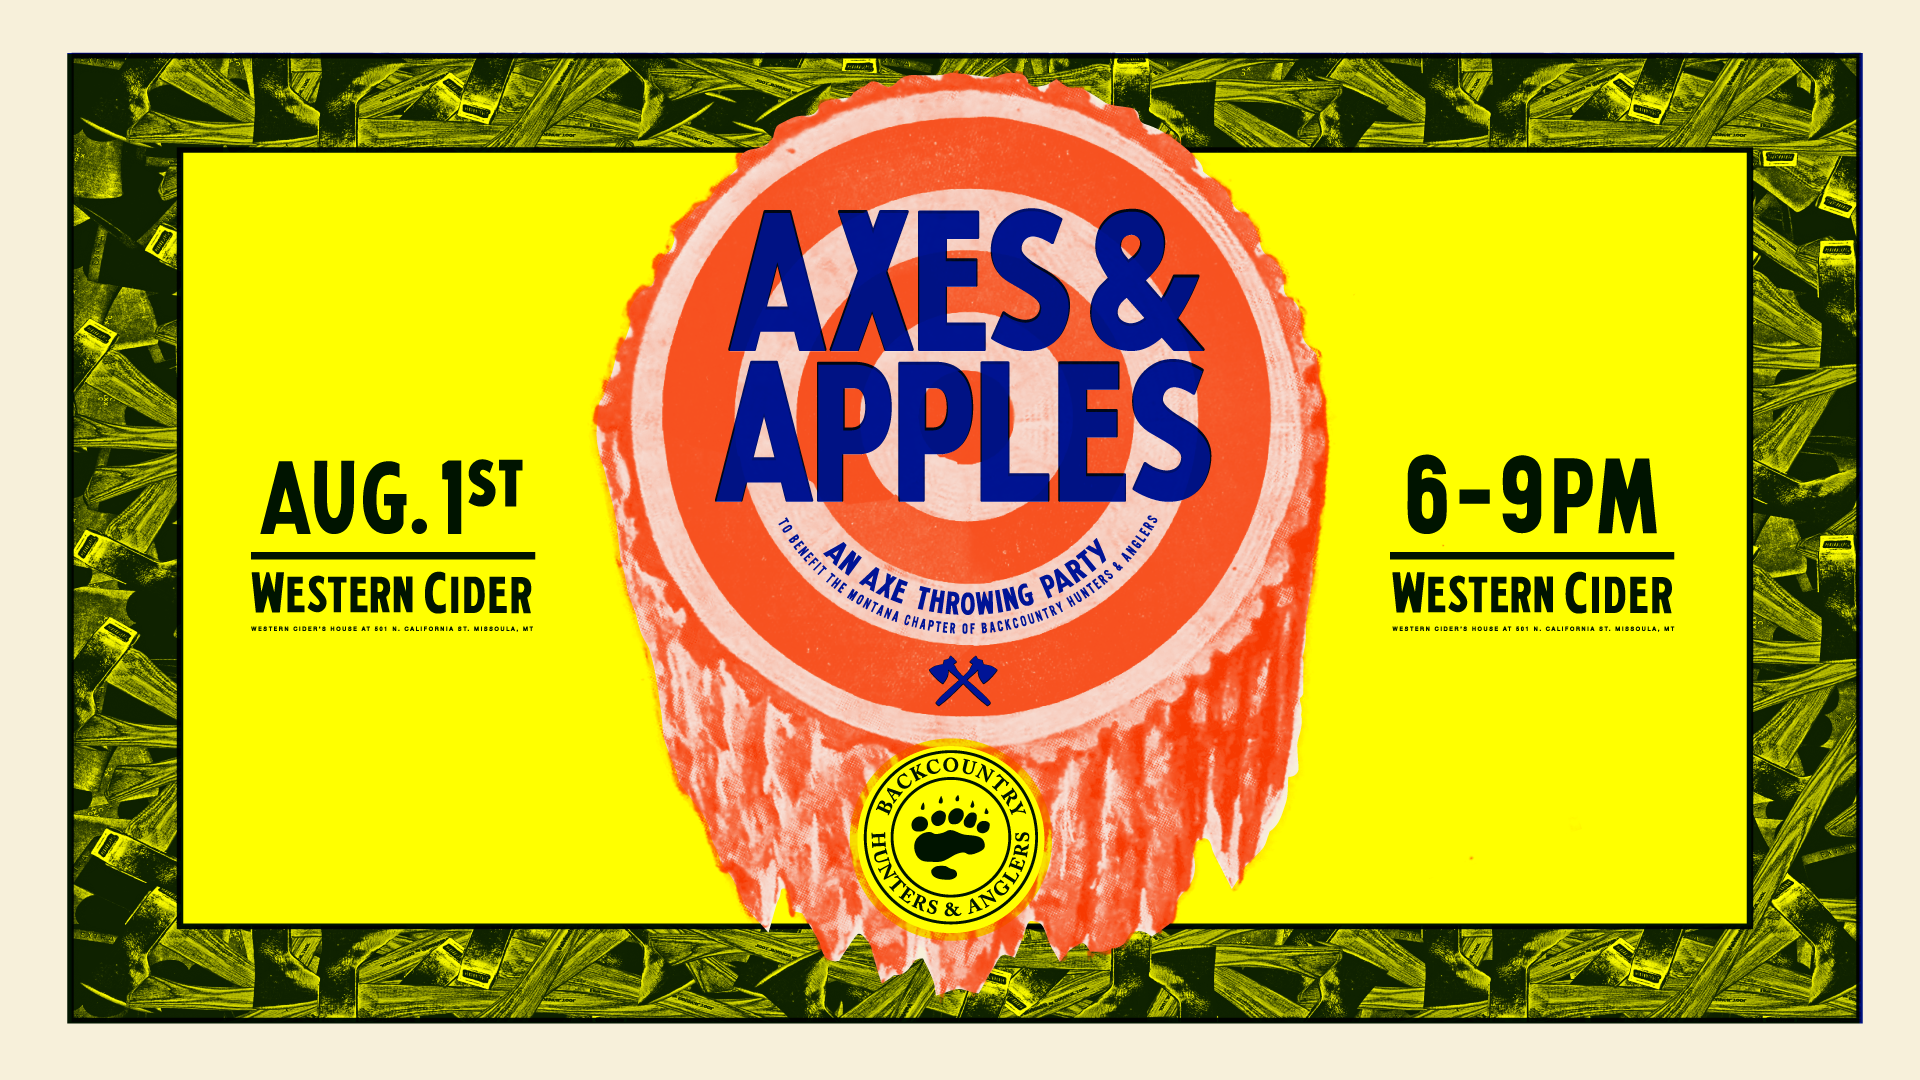 Axes-and-Apples-FB-1.png